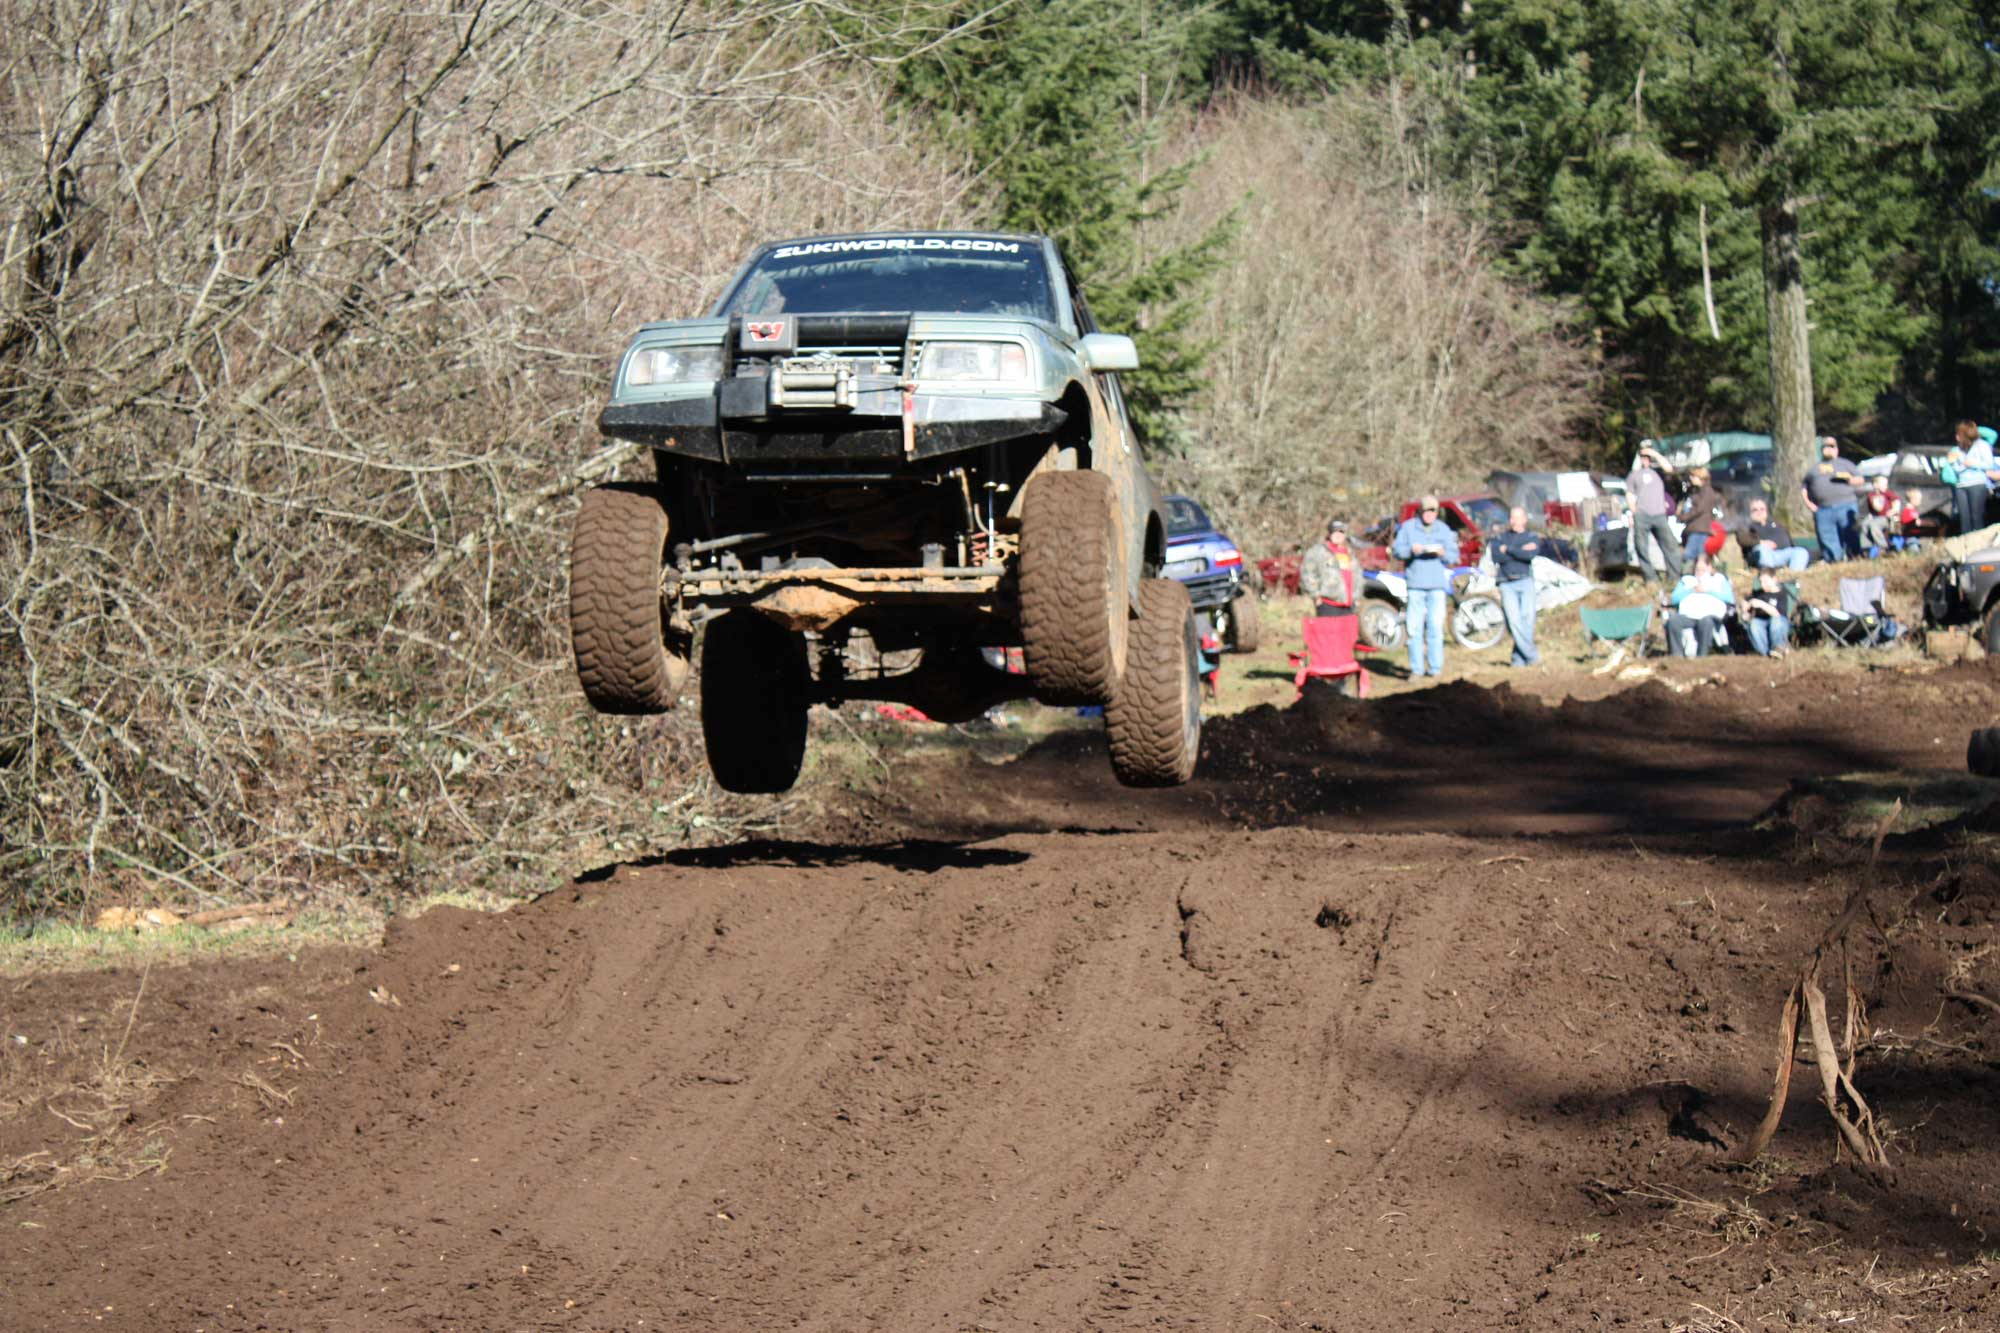 Eric Jumping his '89 Sidekick